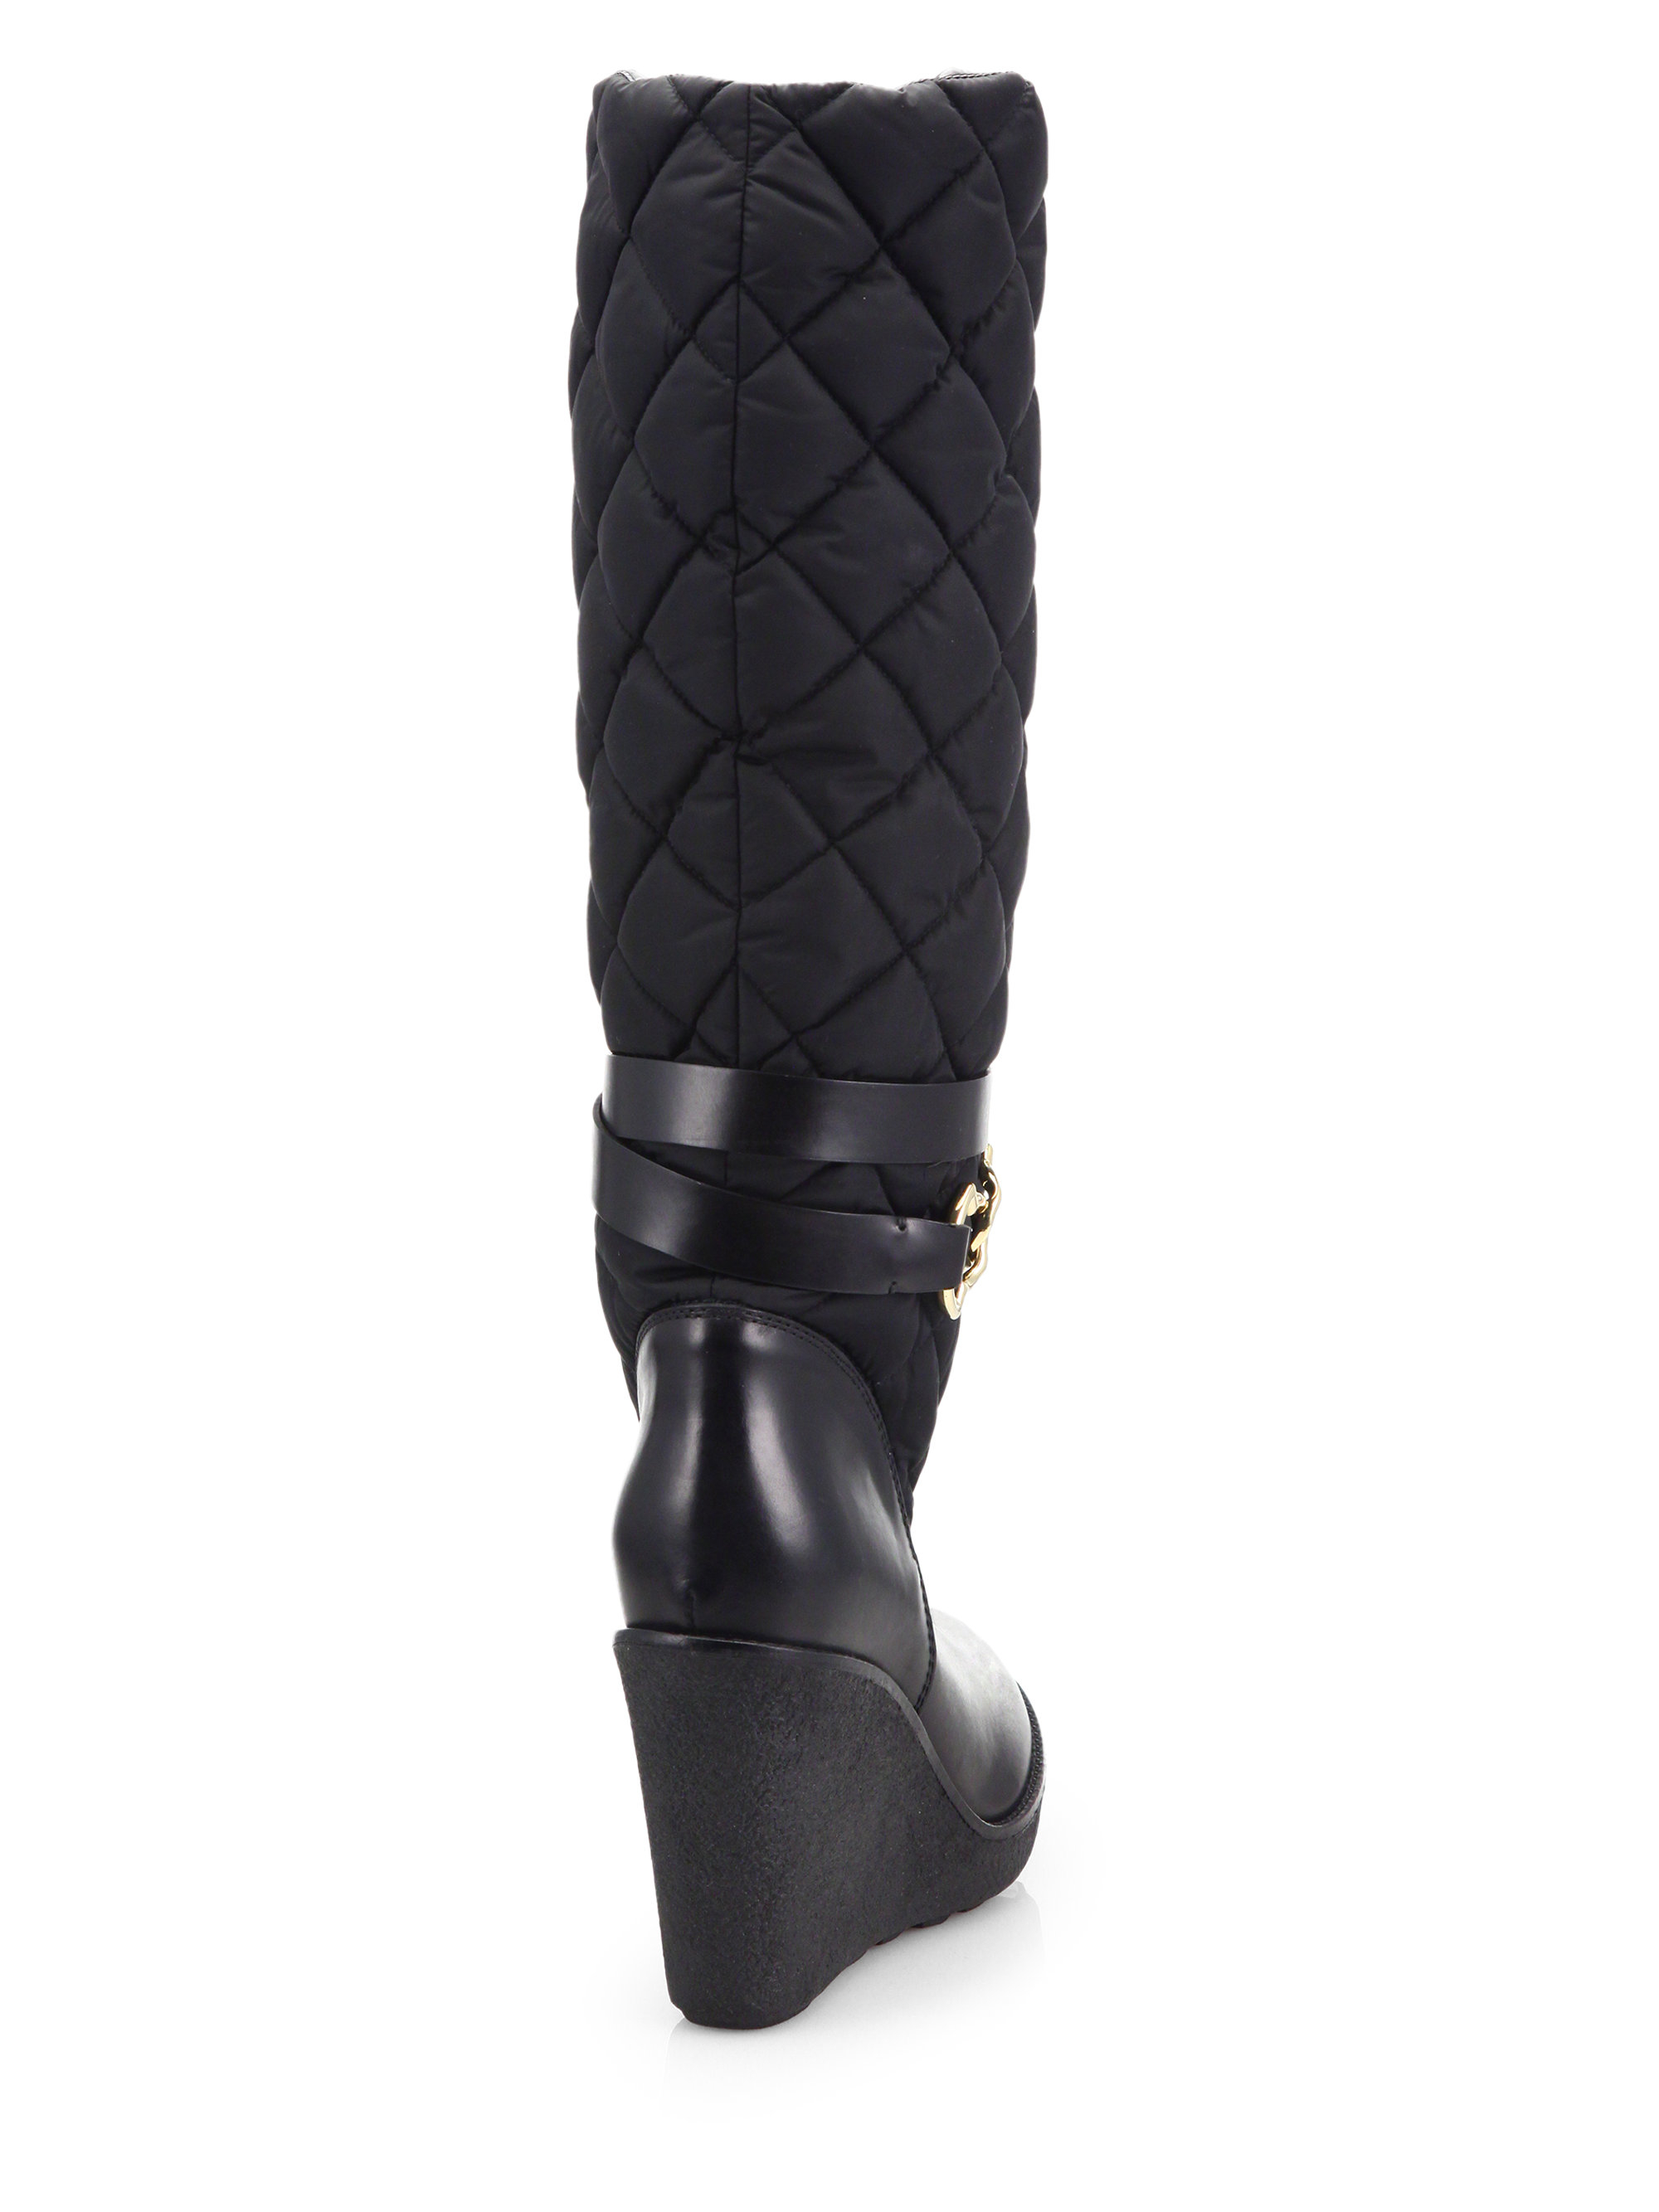 moncler cernobbio quilted knee high wedge boots in black